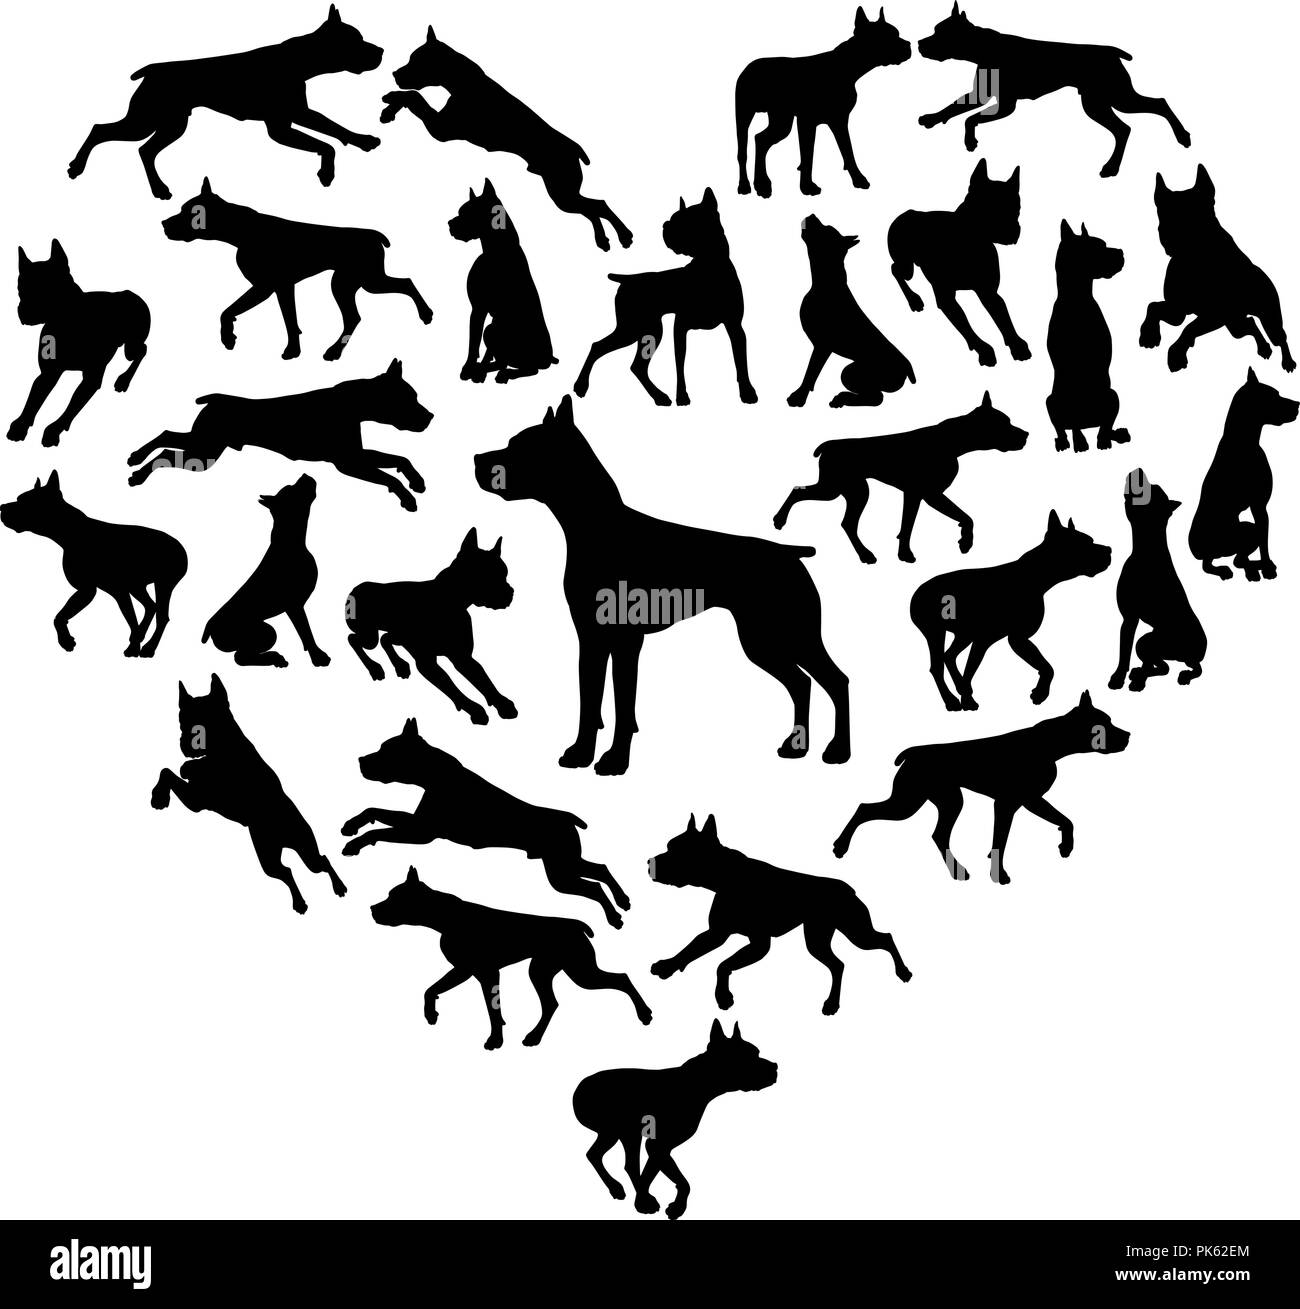 Staffy Dog Heart Silhouette Concept - Stock Image